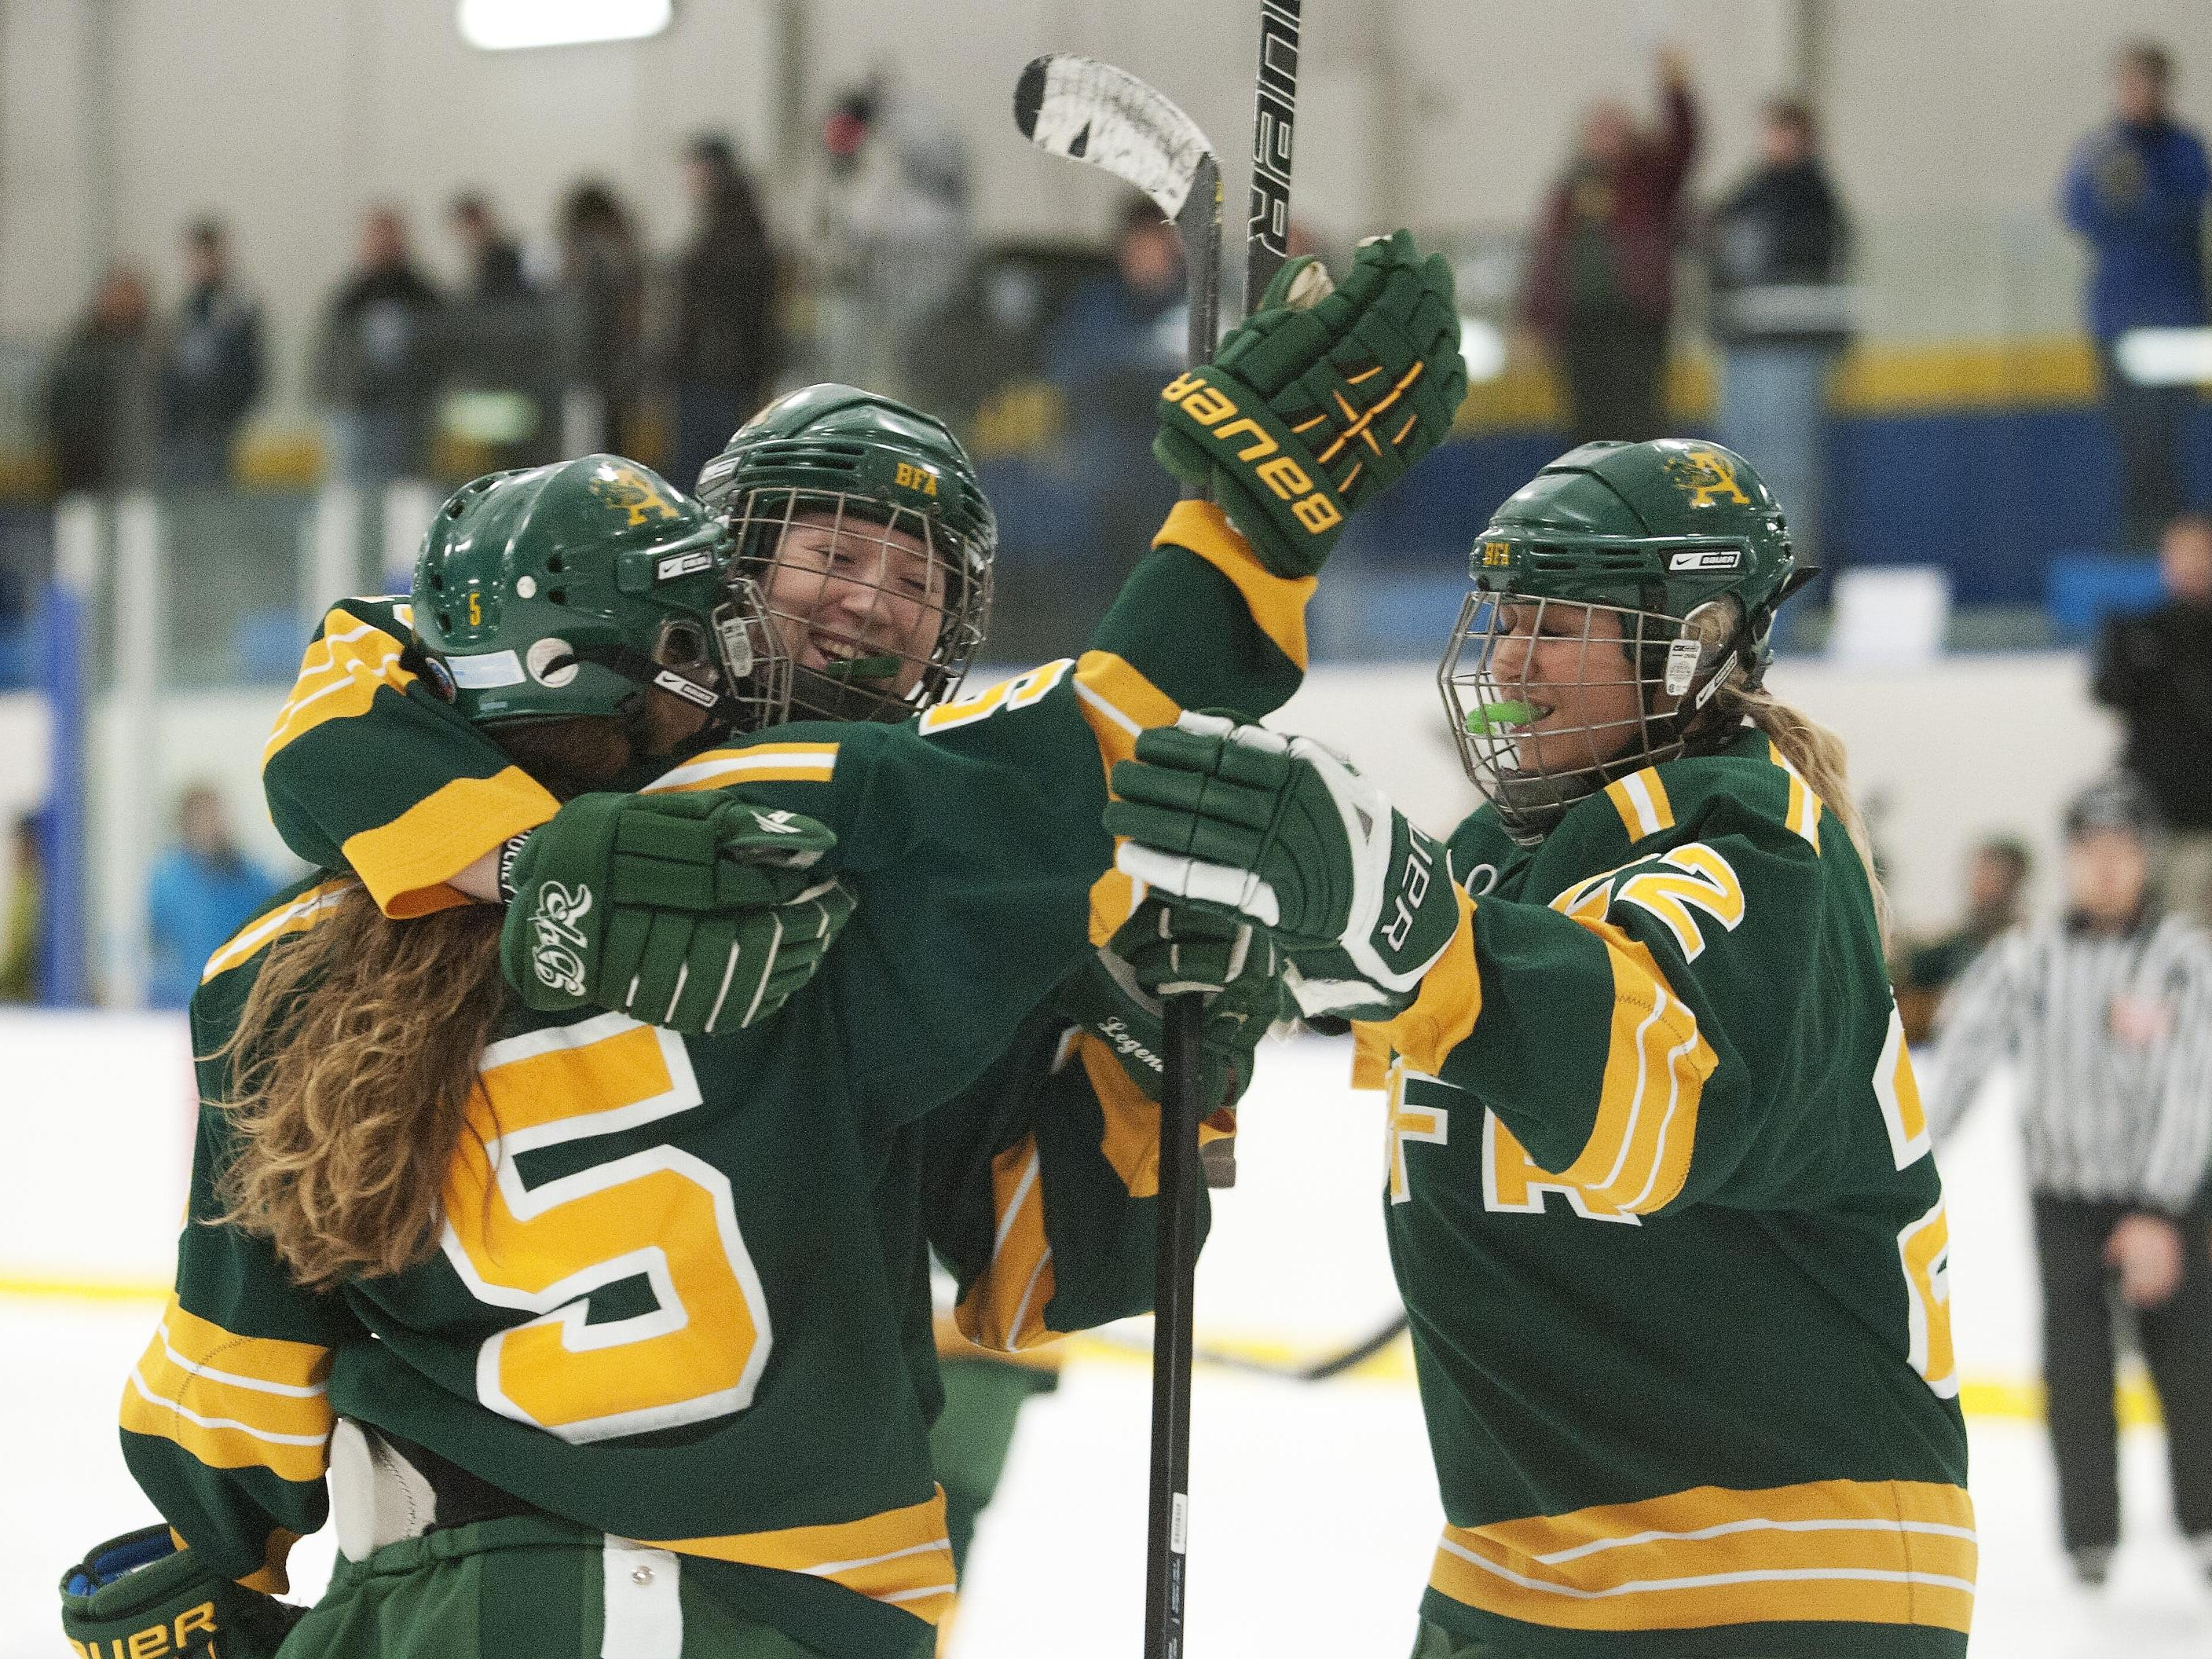 BFA celebrates a goal celebrates a goal during the girls hockey game between BFA St. Albans and Essex at Essex High School on Saturday afternoon January 26, 2013 in Essex, Vermont. (BRIAN JENKINS, for the Free Press)